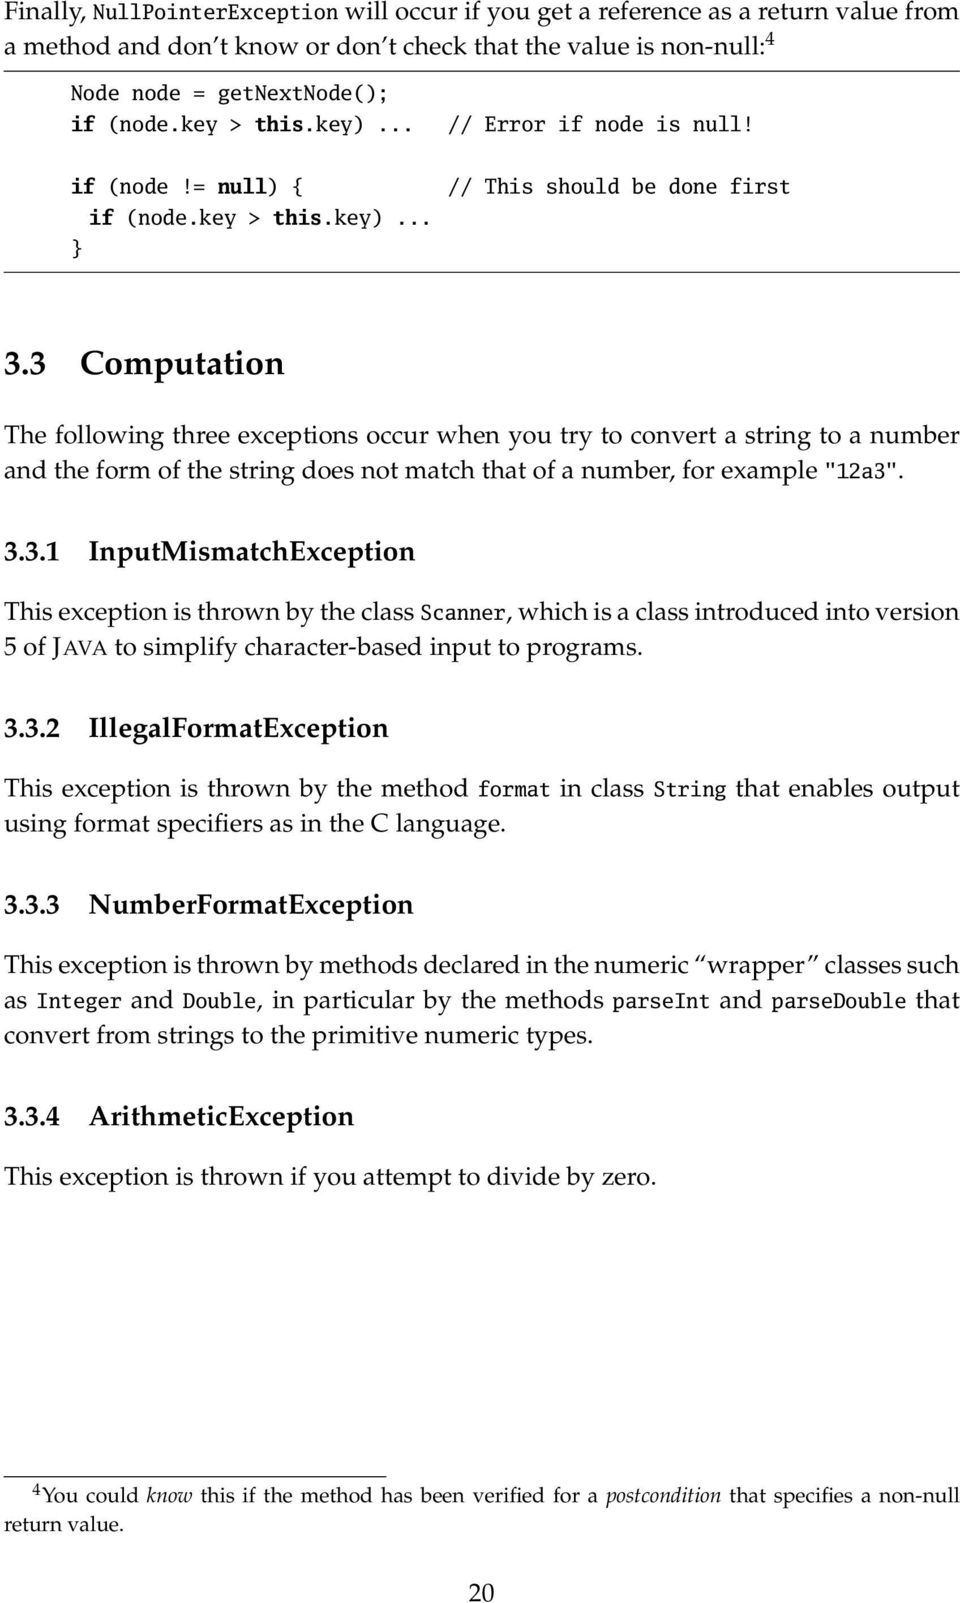 "3 Computation The following three exceptions occur when you try to convert a string to a number and the form of the string does not match that of a number, for example ""12a3"". 3.3.1 InputMismatchException This exception is thrown by the class Scanner, which is a class introduced into version 5 of JAVA to simplify character-based input to programs."